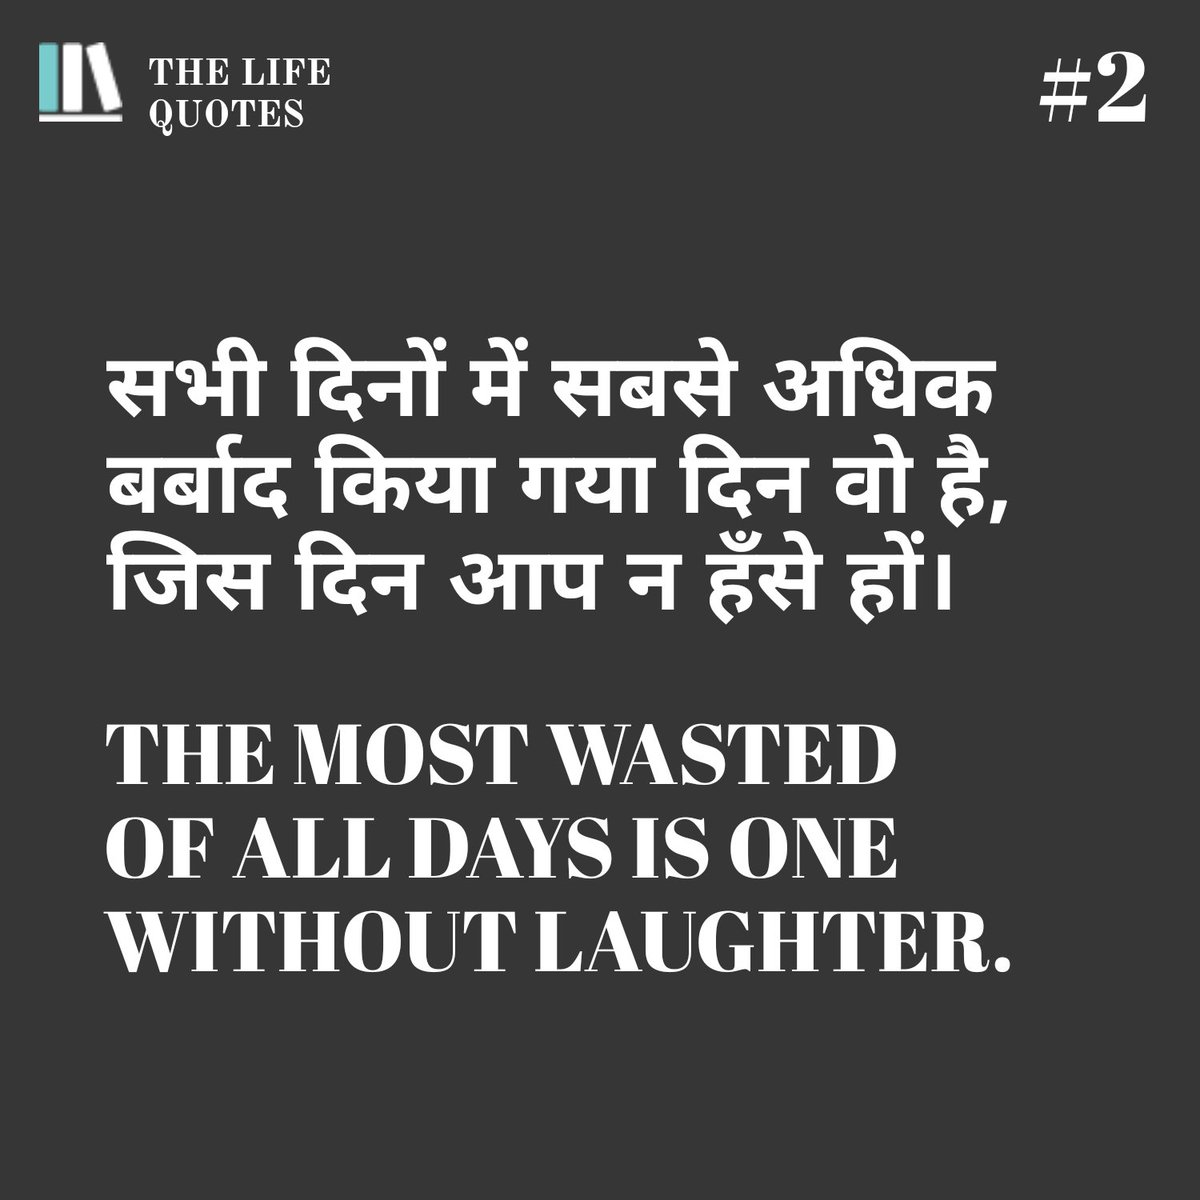 #thelifequotes #morningmotivation #quotes #life #tlq #examscancelled #lovequotes